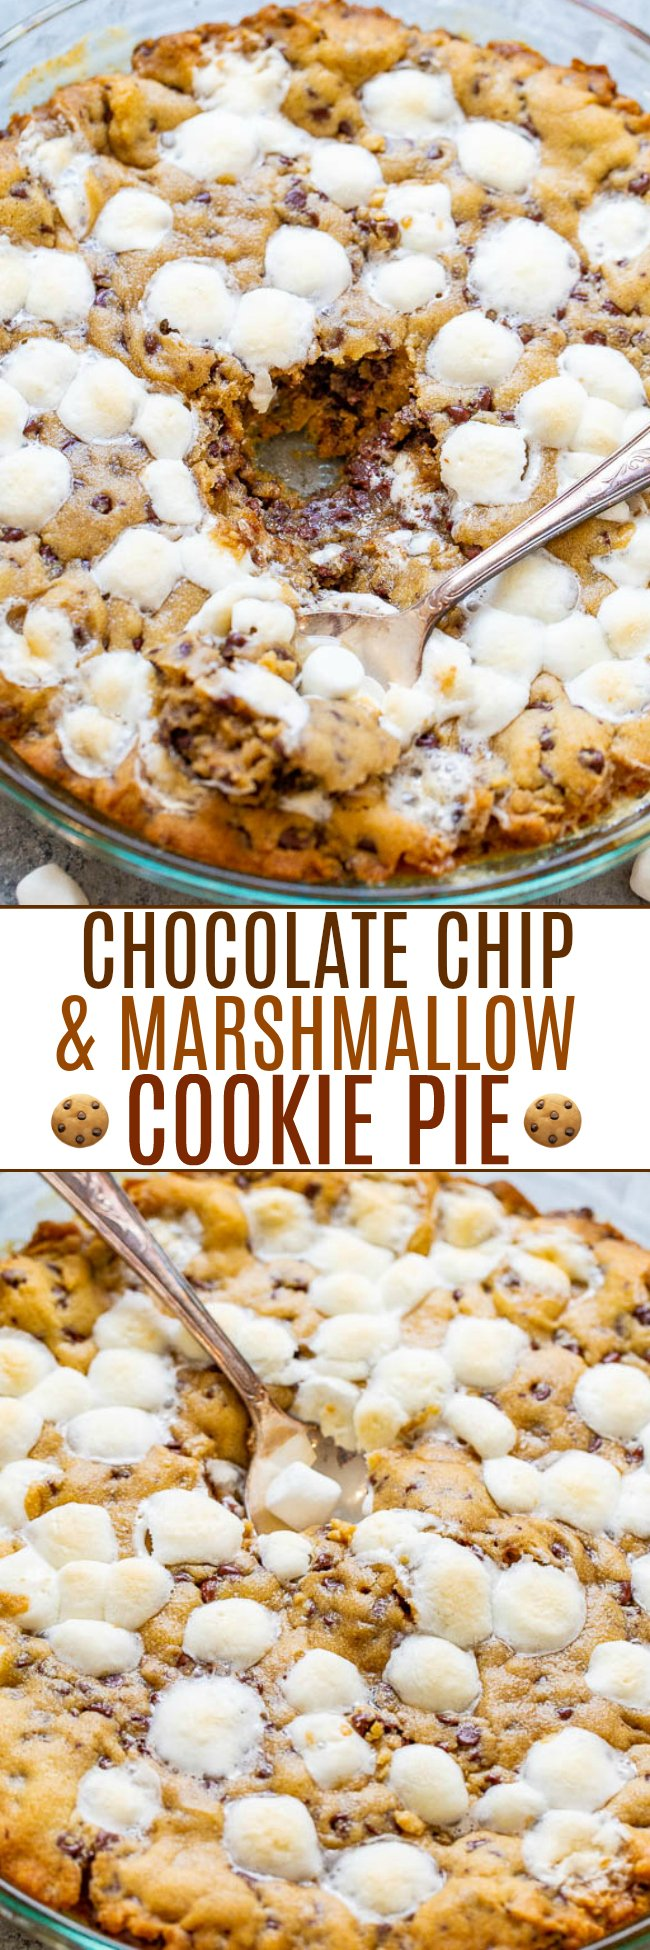 Gooey Chocolate Chip and Marshmallow Cookie Pie - The whole pie tastes like the soft, GOOEY, underbaked centers of fresh chocolate chip cookies!! Between the melted chocolate, marshmallows, and big time gooey factor, this pie is PERFECT!!